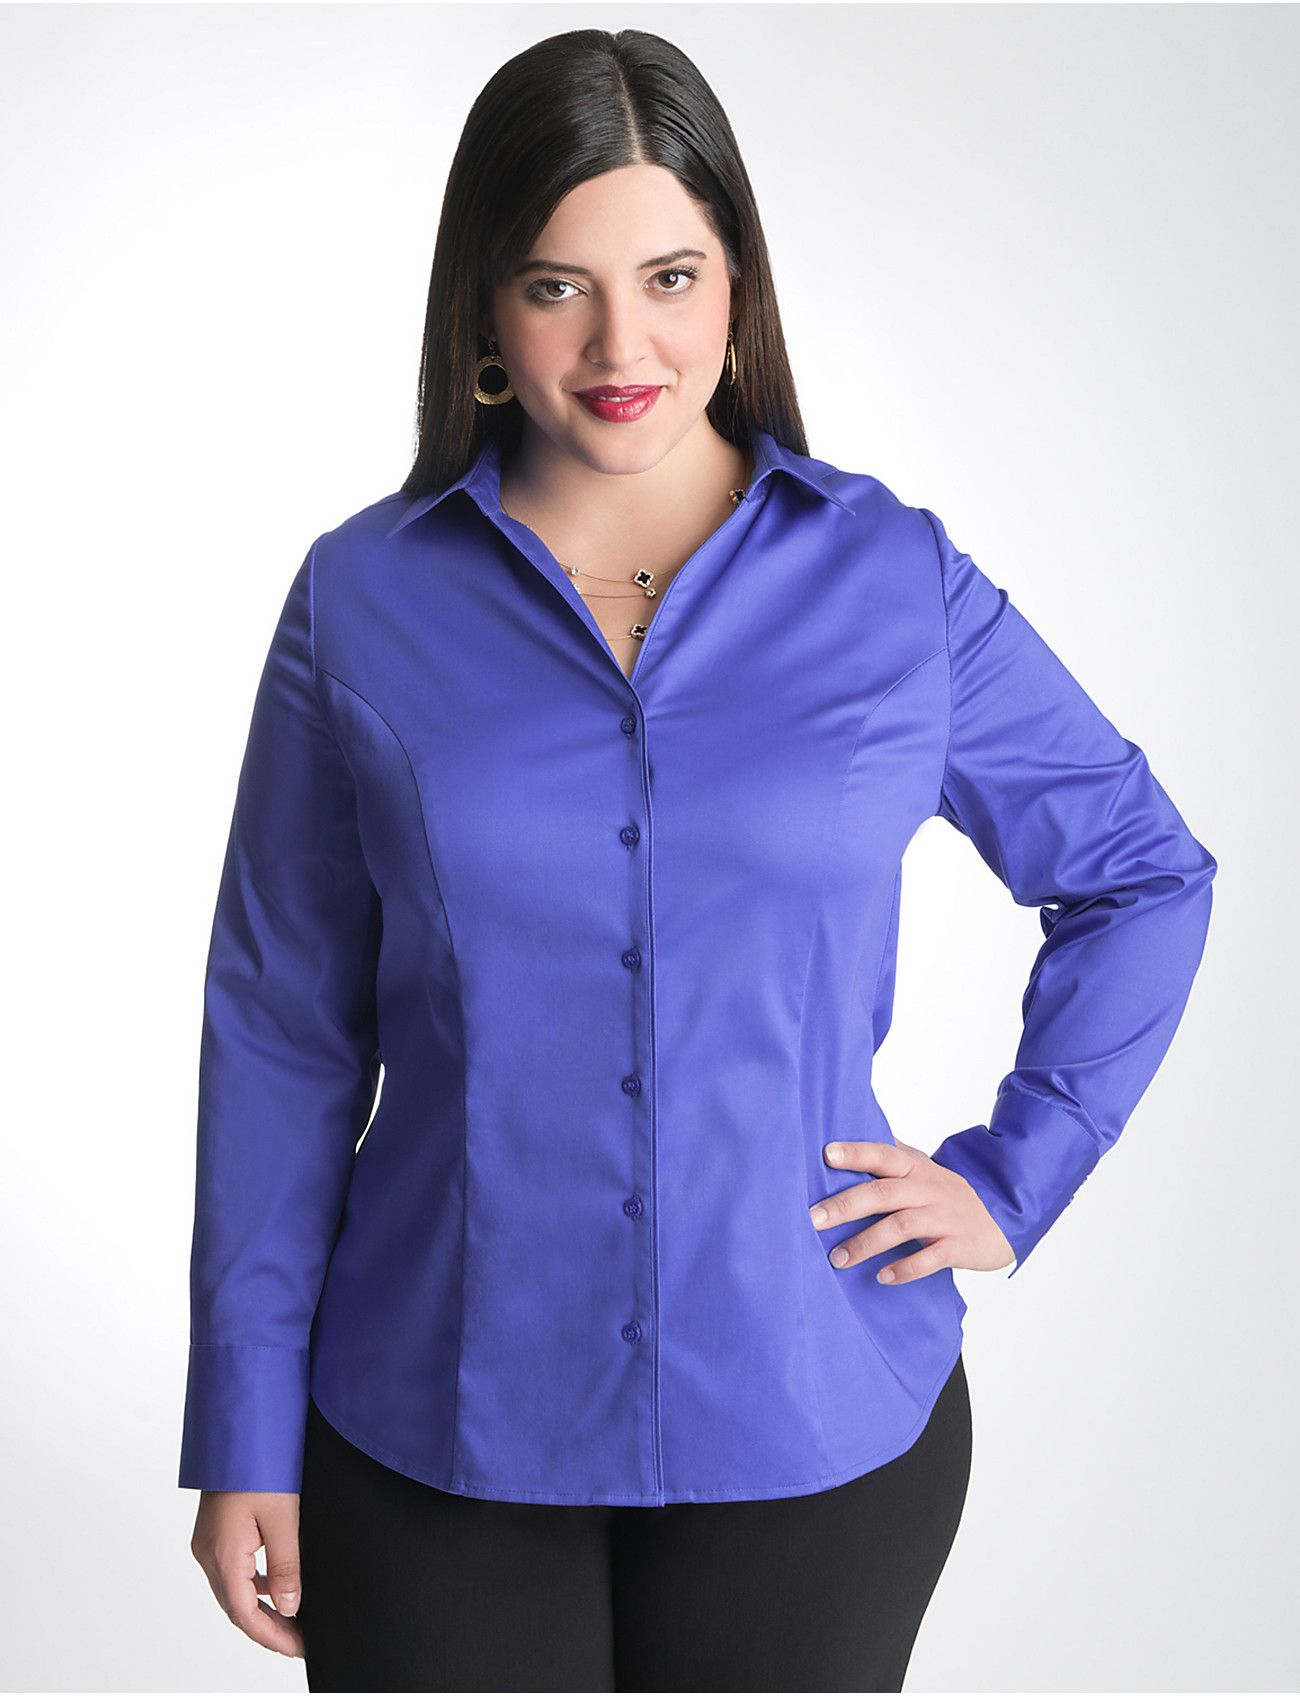 Full Figure Cotton Sateen Shirt | Lane Bryant | Full figure fashion ...